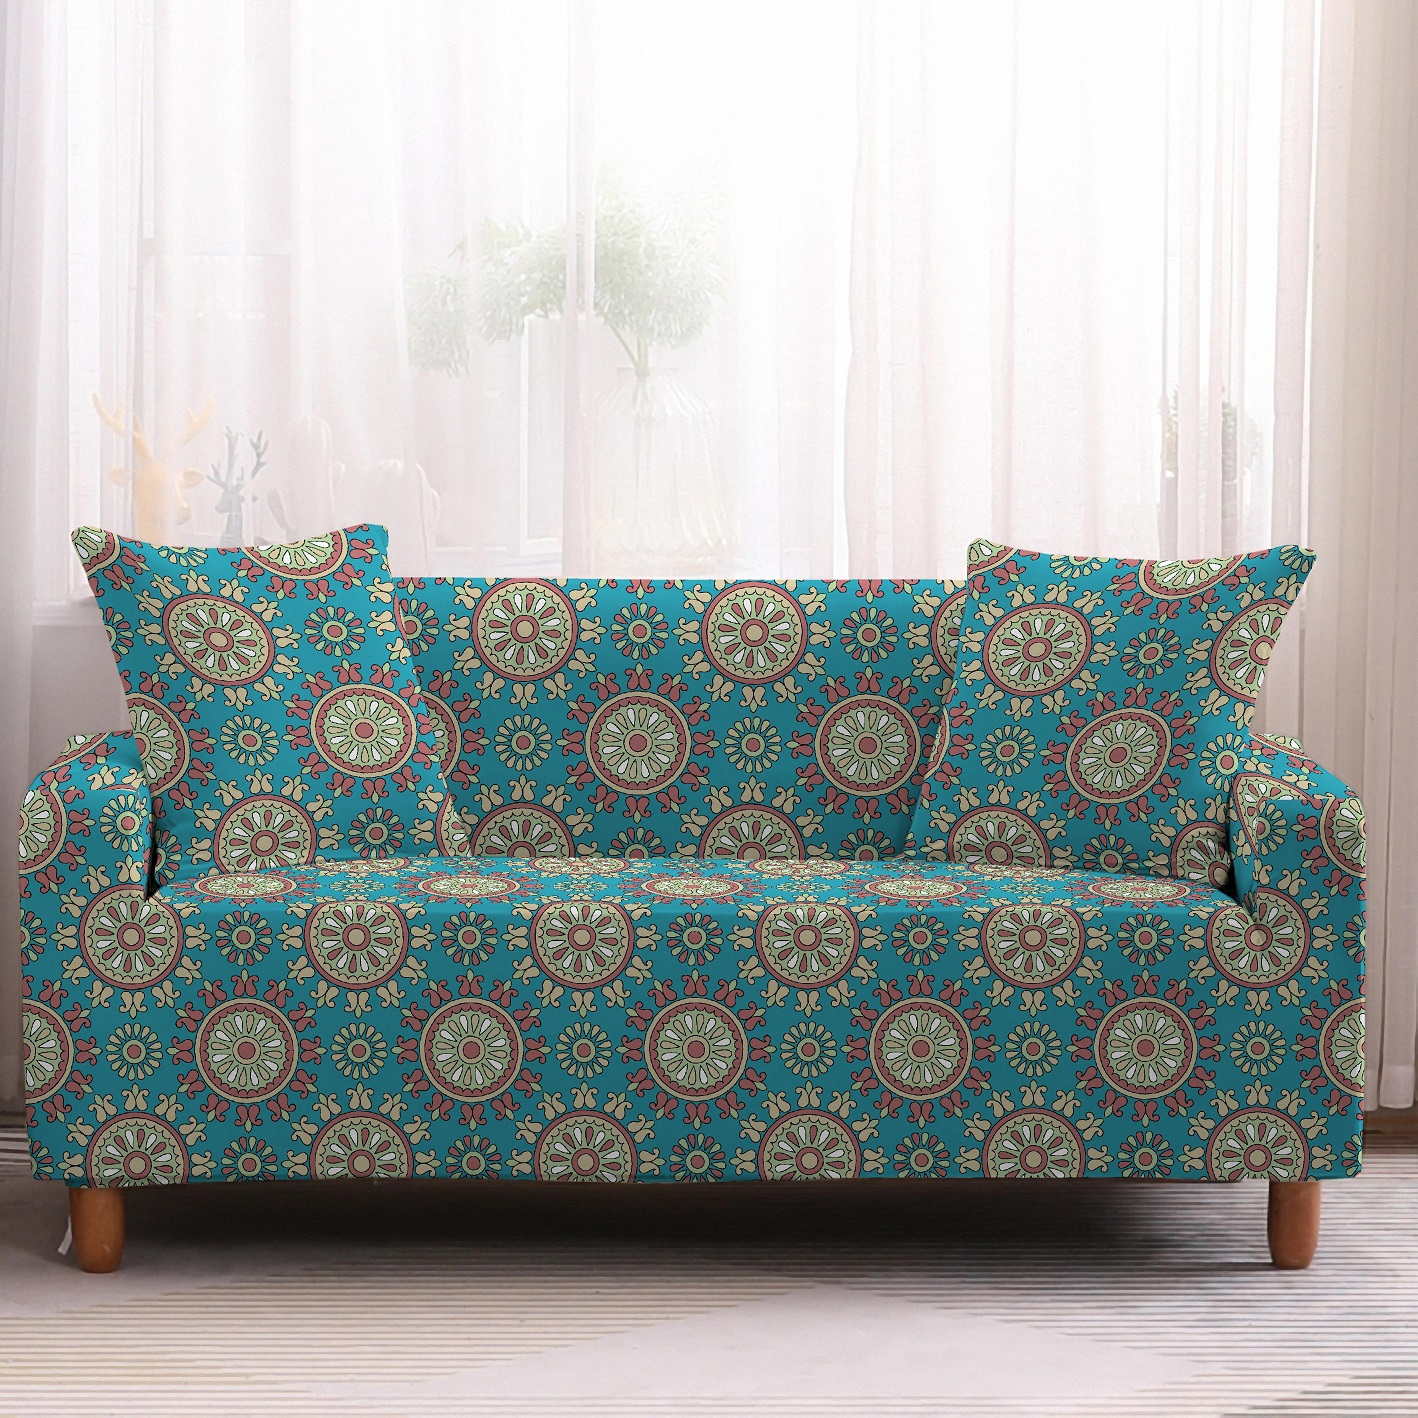 Bohemia Slipcovers Sofa Cover in Mandala Pattern to Protect Living Room Furniture from Stains and Dust 12